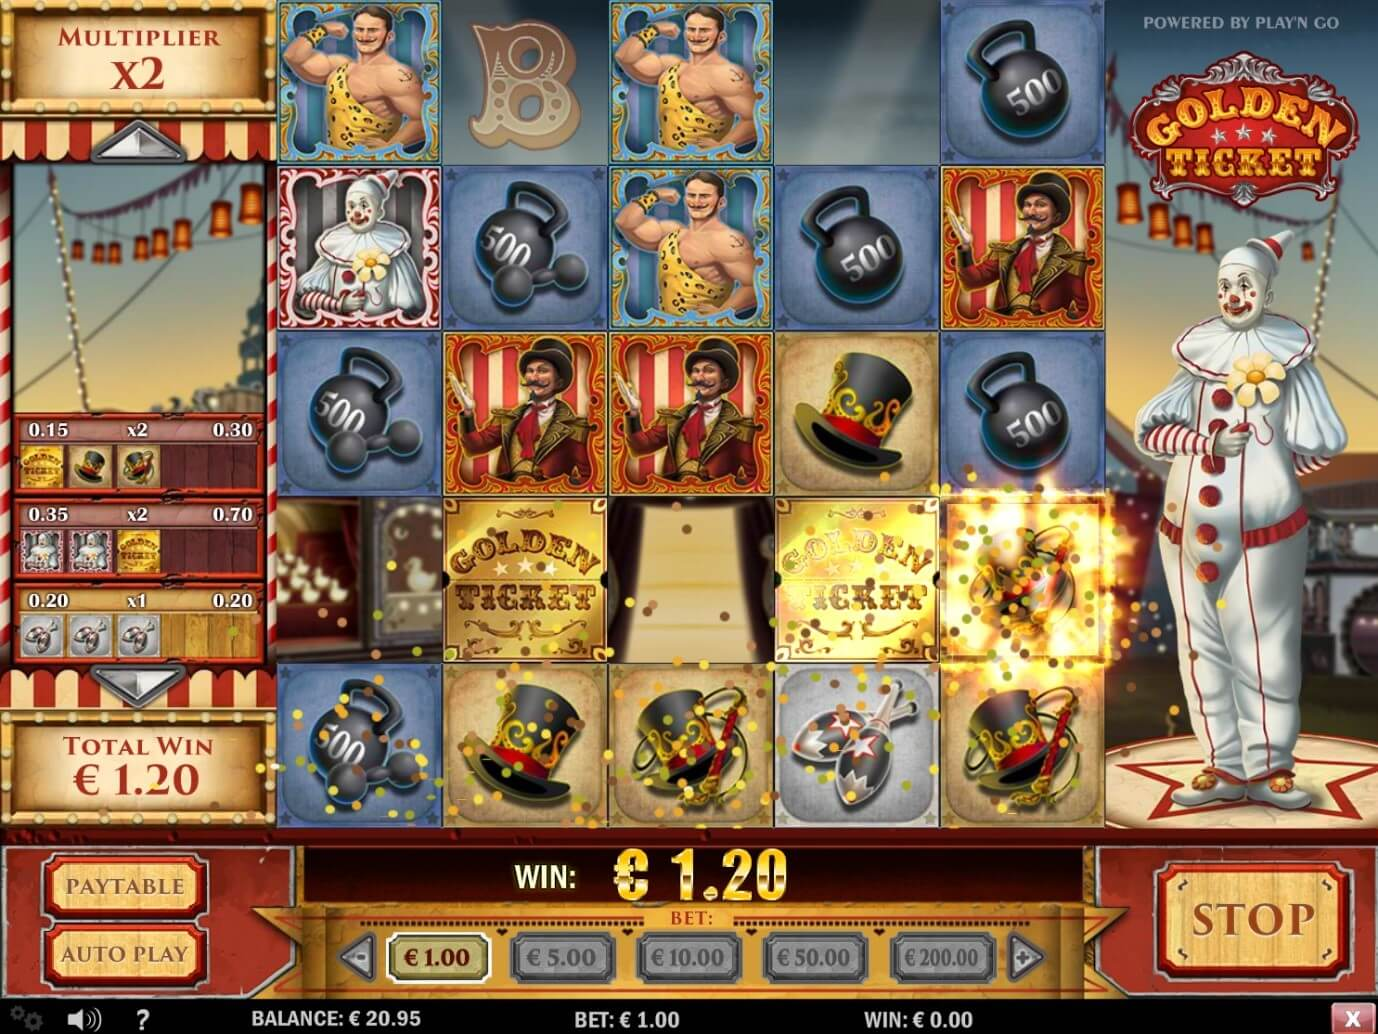 Base game of Golden Ticket online slot from PlayOJO